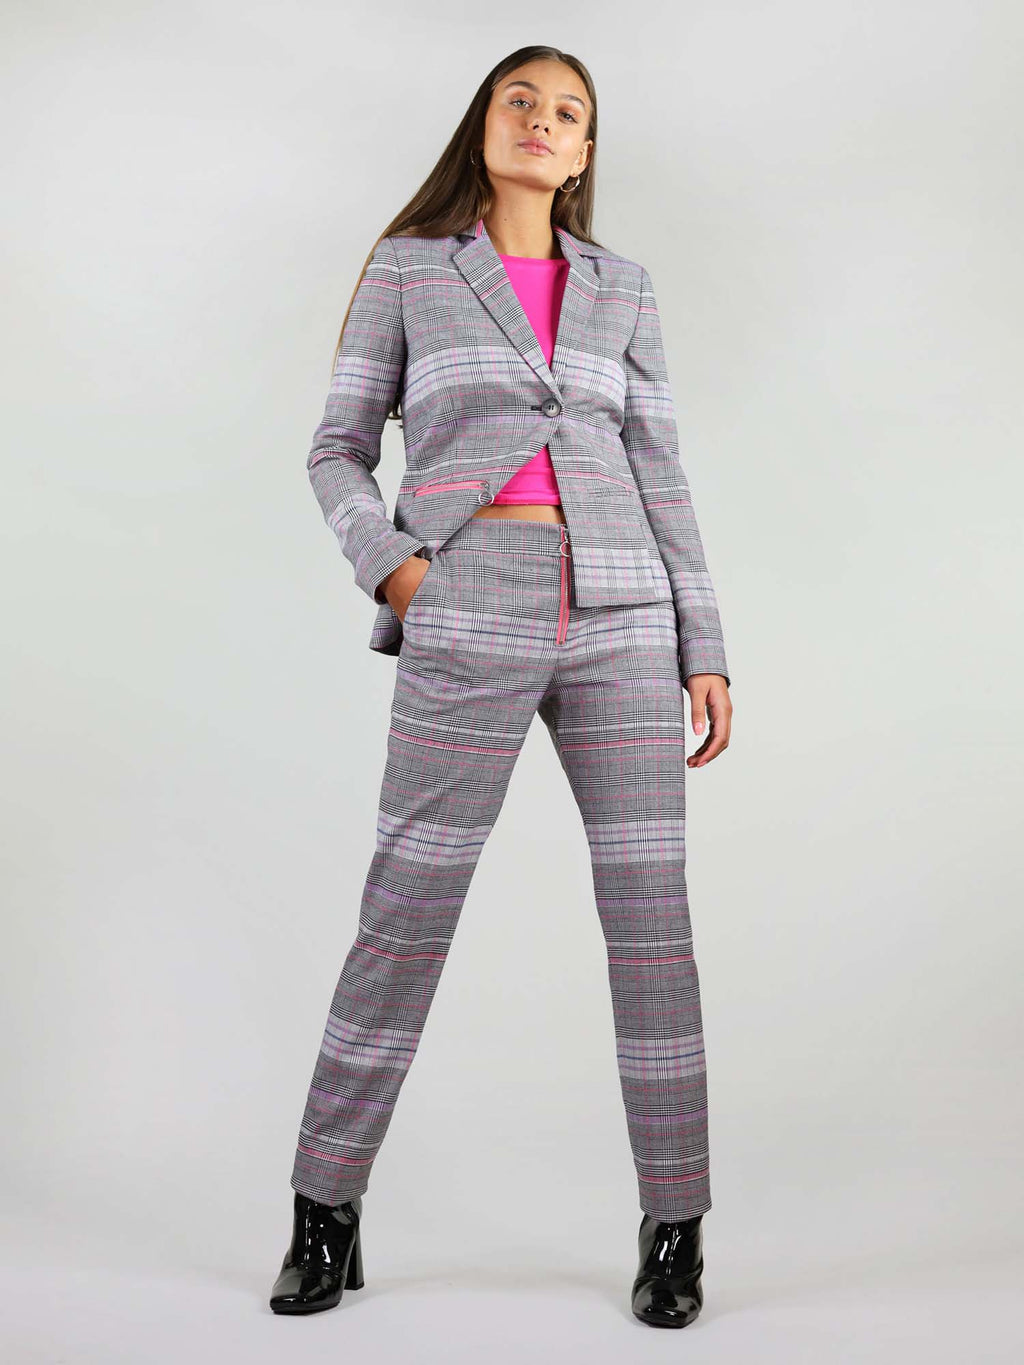 The revivify trousers come in grey and pink checker fabric and bright pink details. They are straight leg fit and have two slant pockets.